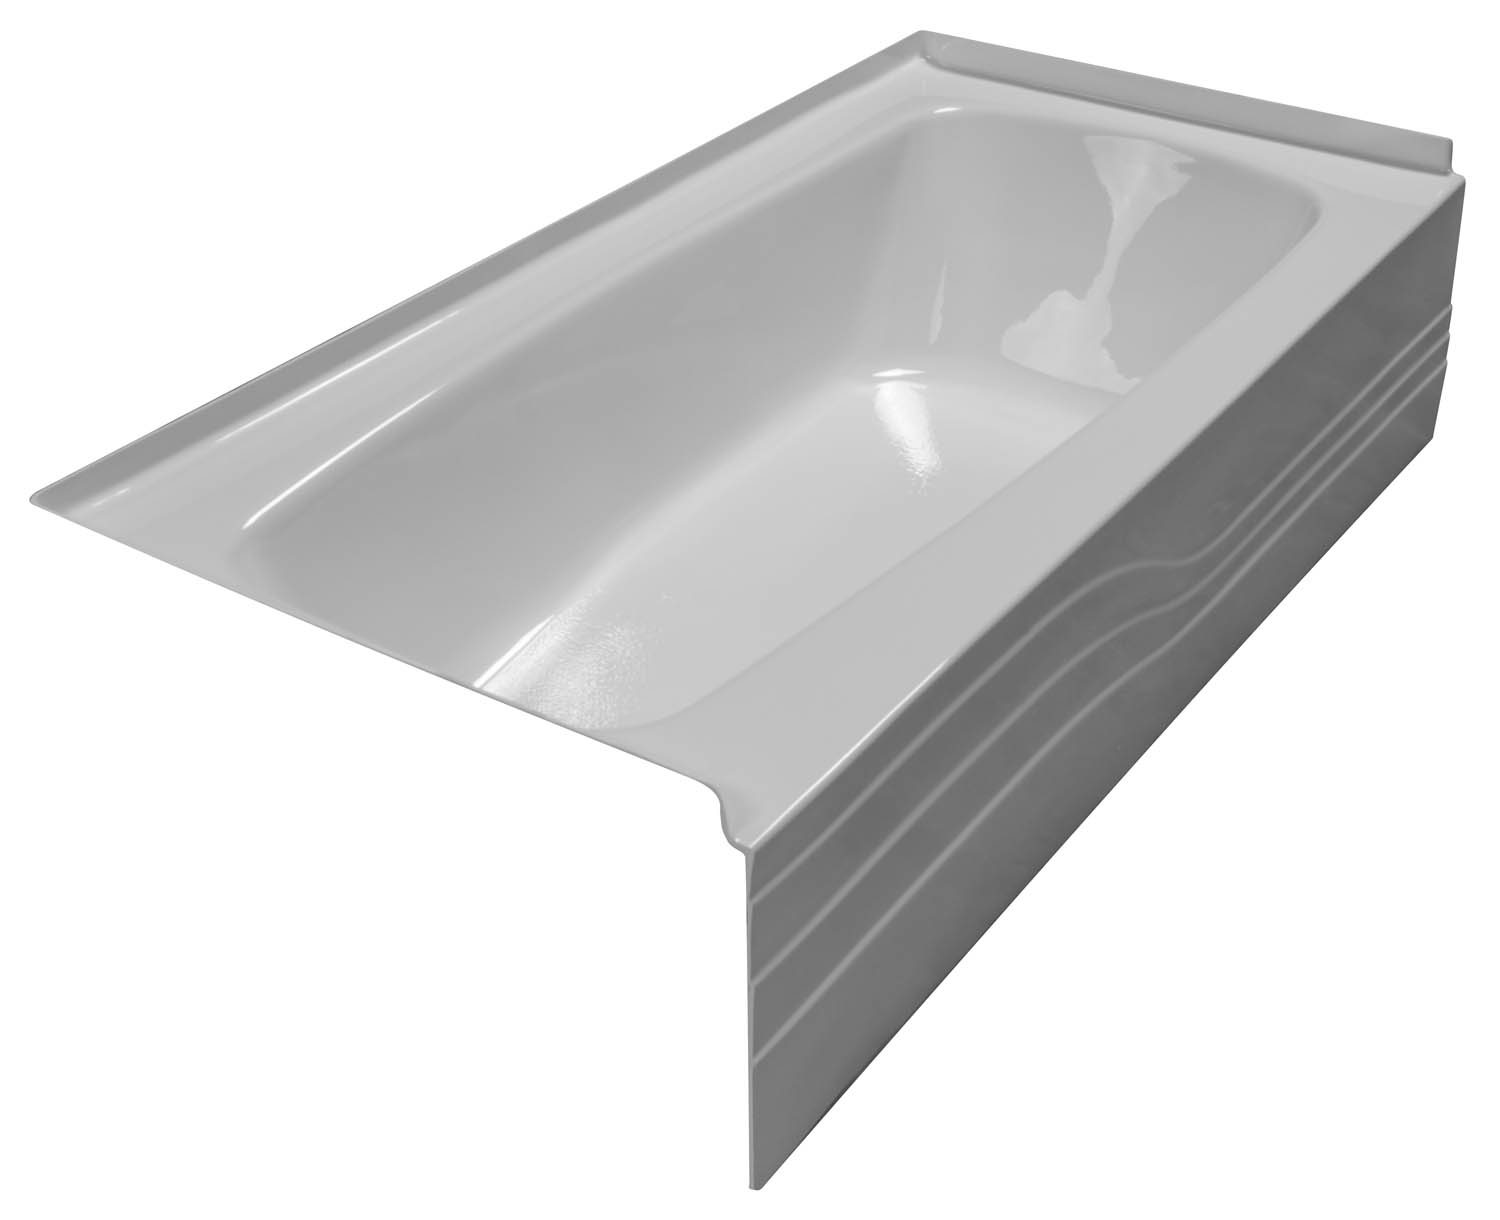 30x60 Skirted Bathtub BR-26 Left Hand - BathTubs.com